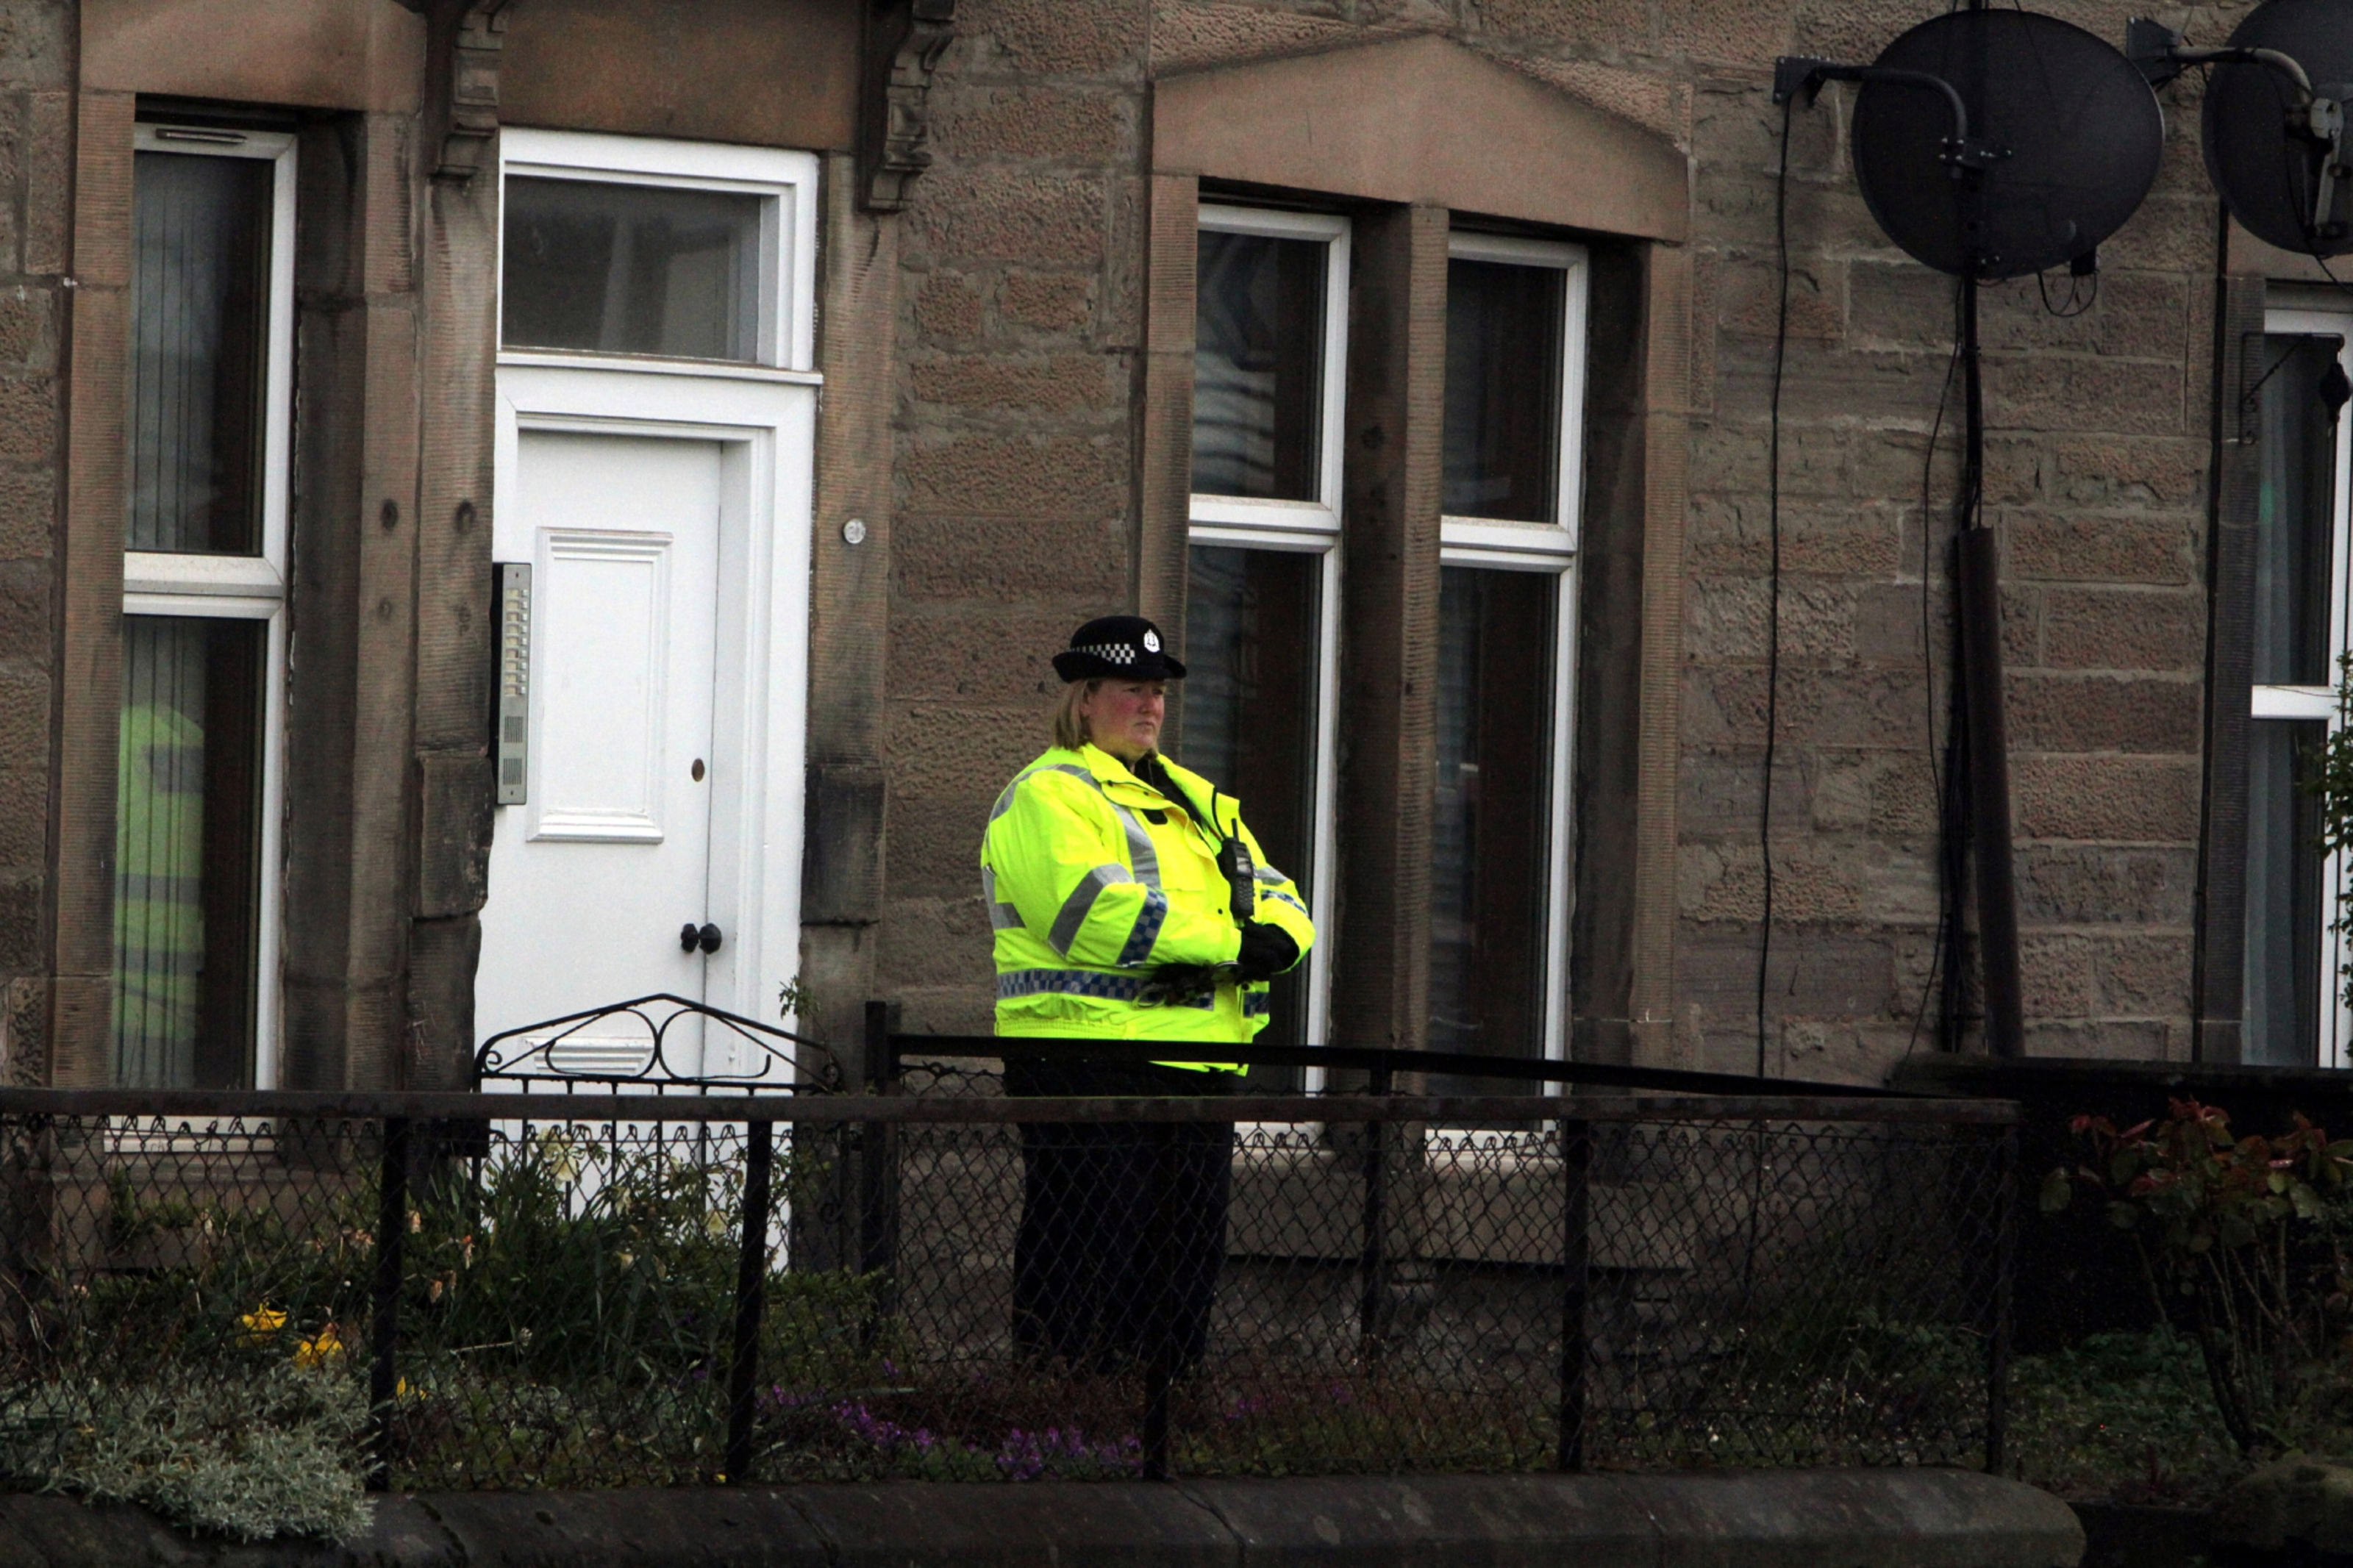 Police have charged a man in connection with the death